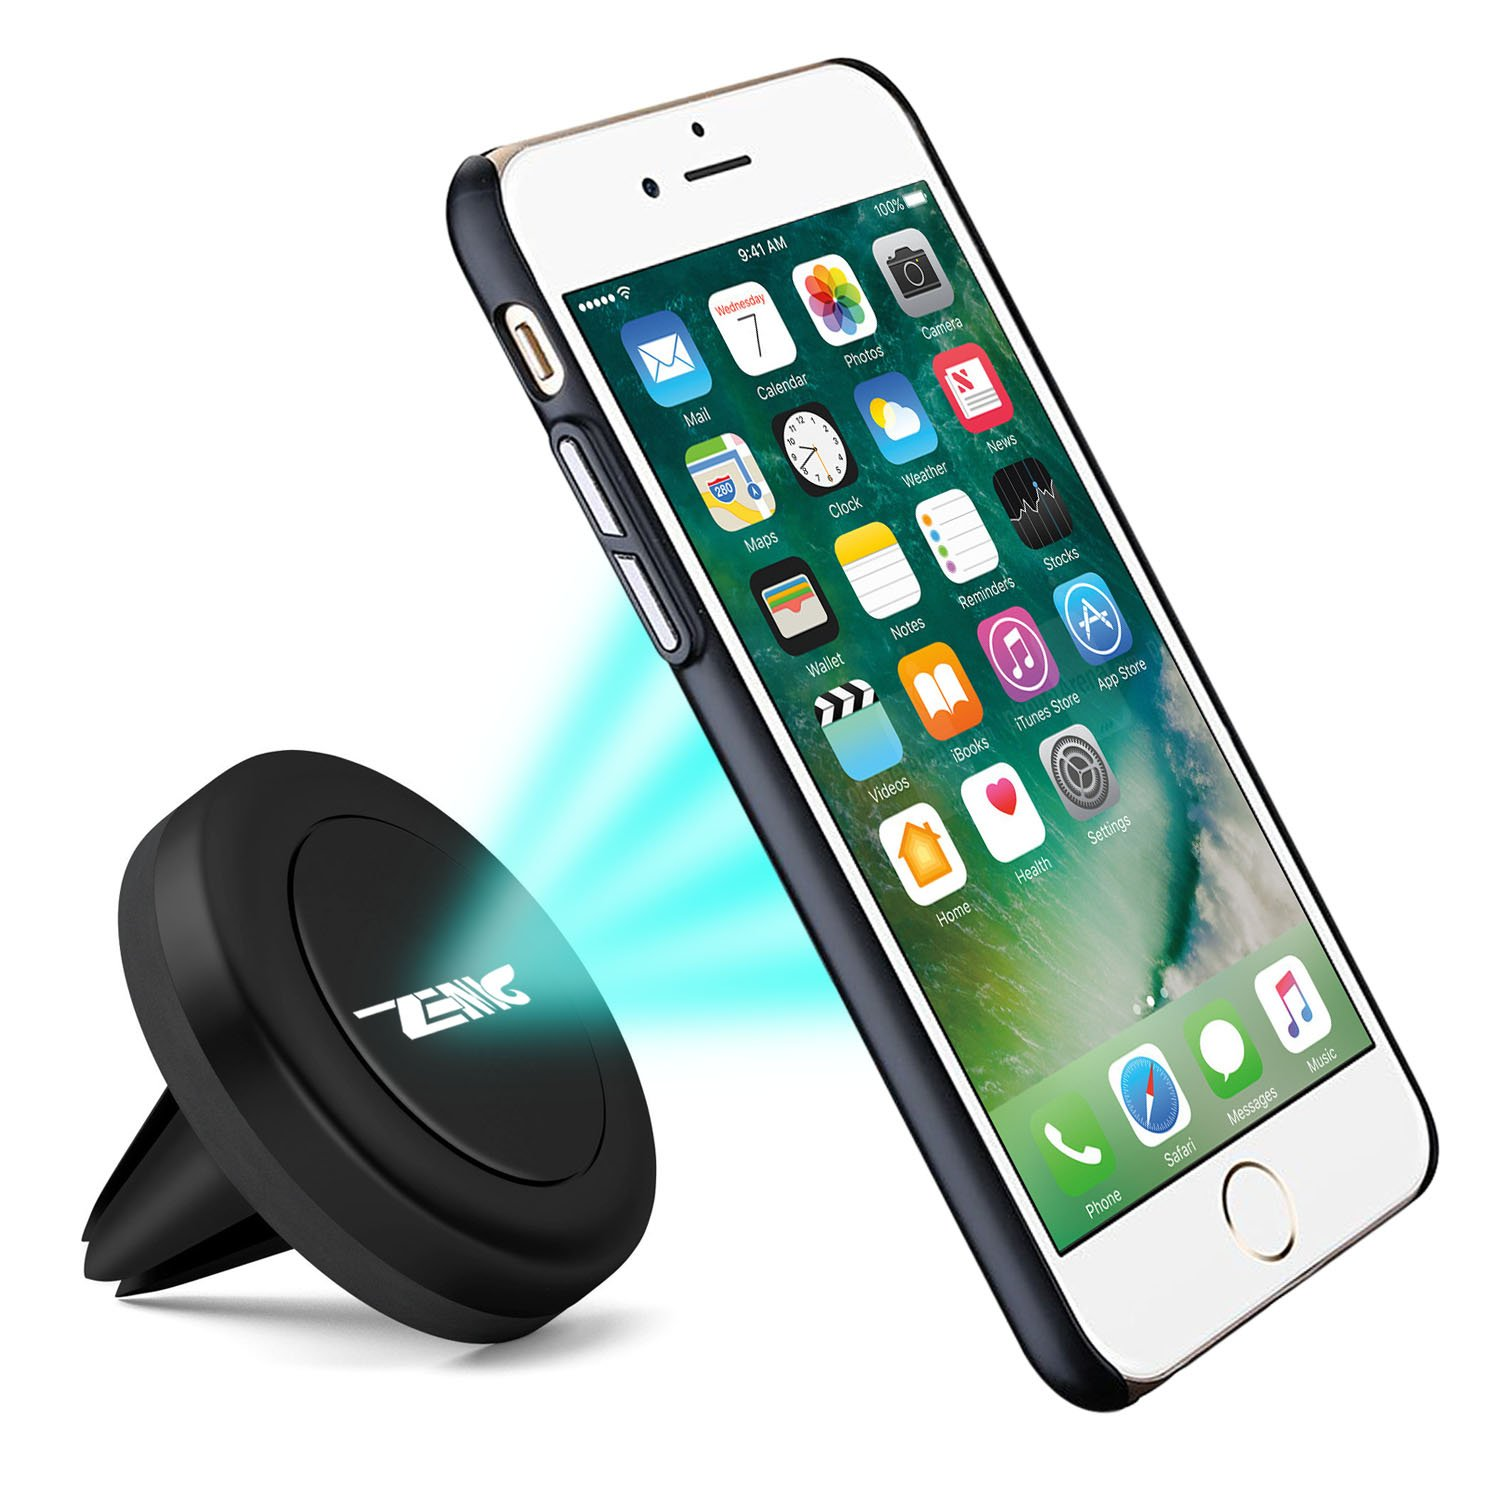 2 Pack LG ... Zenic 2 Pack Air Vent Magnetic Car Mount Phone Holder for Most Mobile Devices including iPhone 4327087034 Samsung Magnetic Car Mount